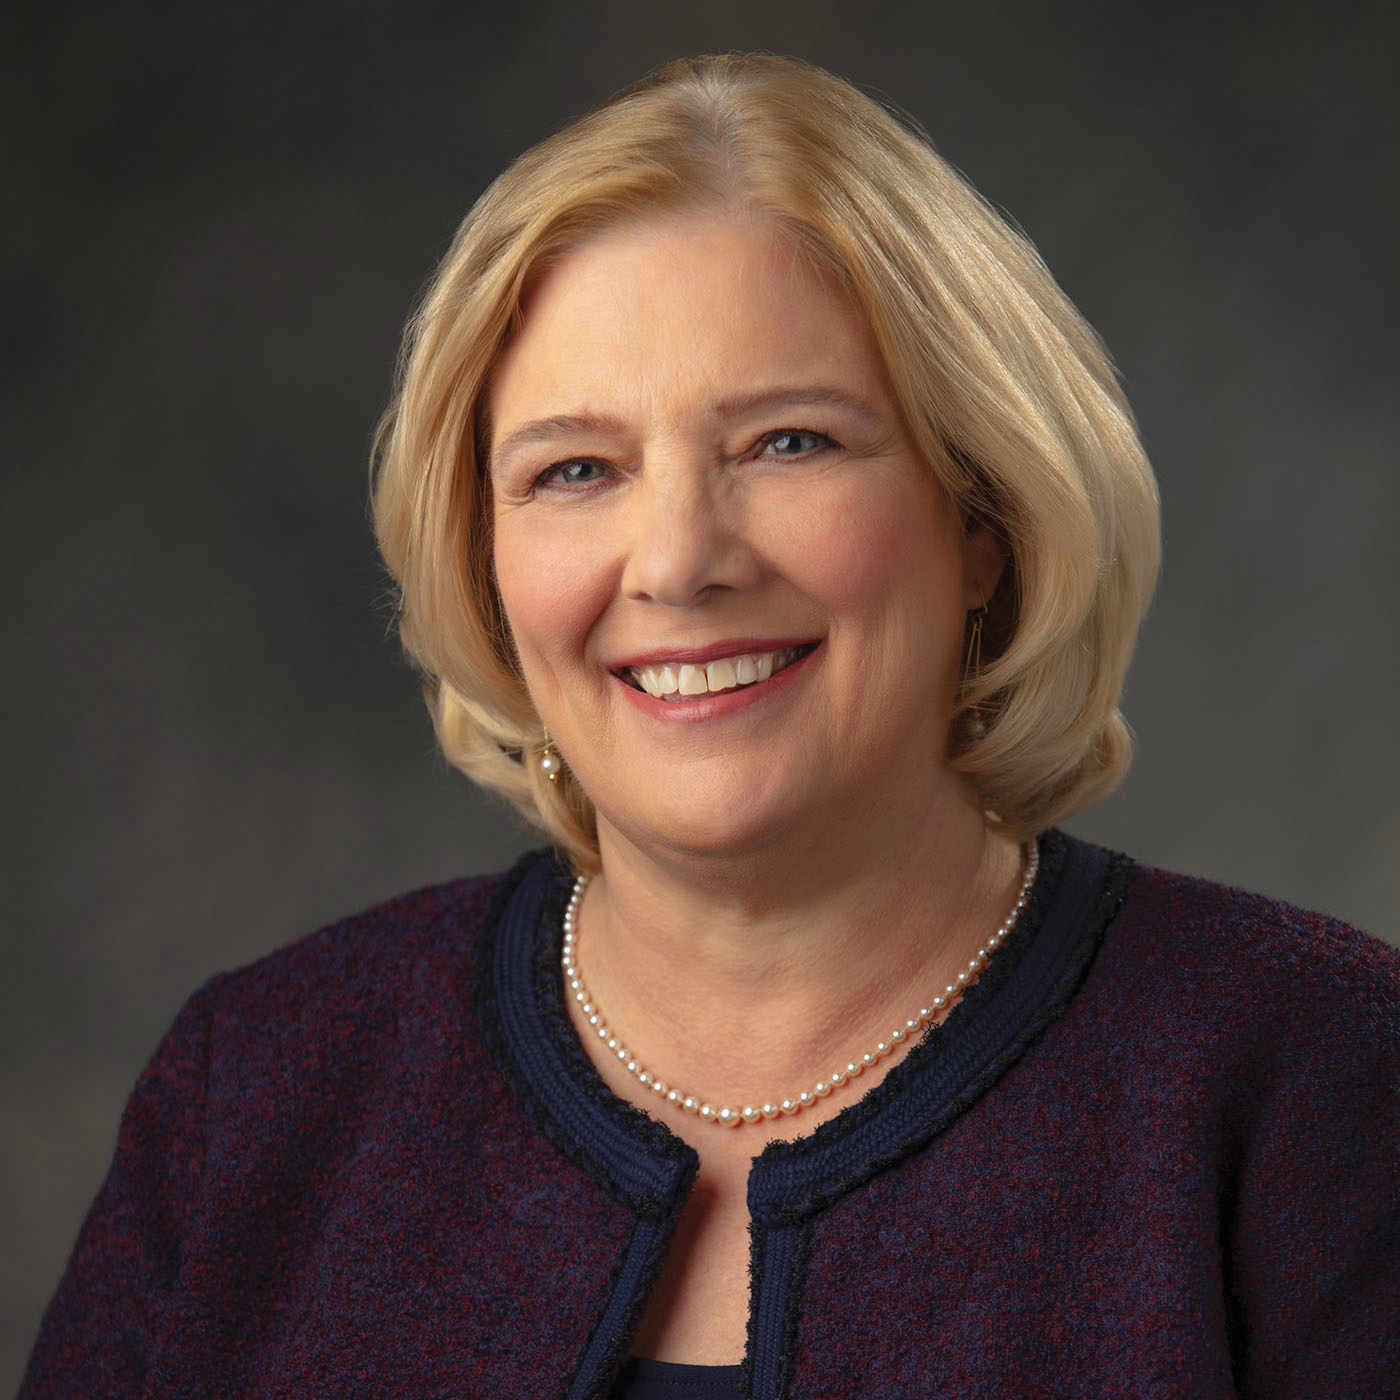 Photo of Carol M. Musil, Dean of Frances Payne Bolton School of Nursing.